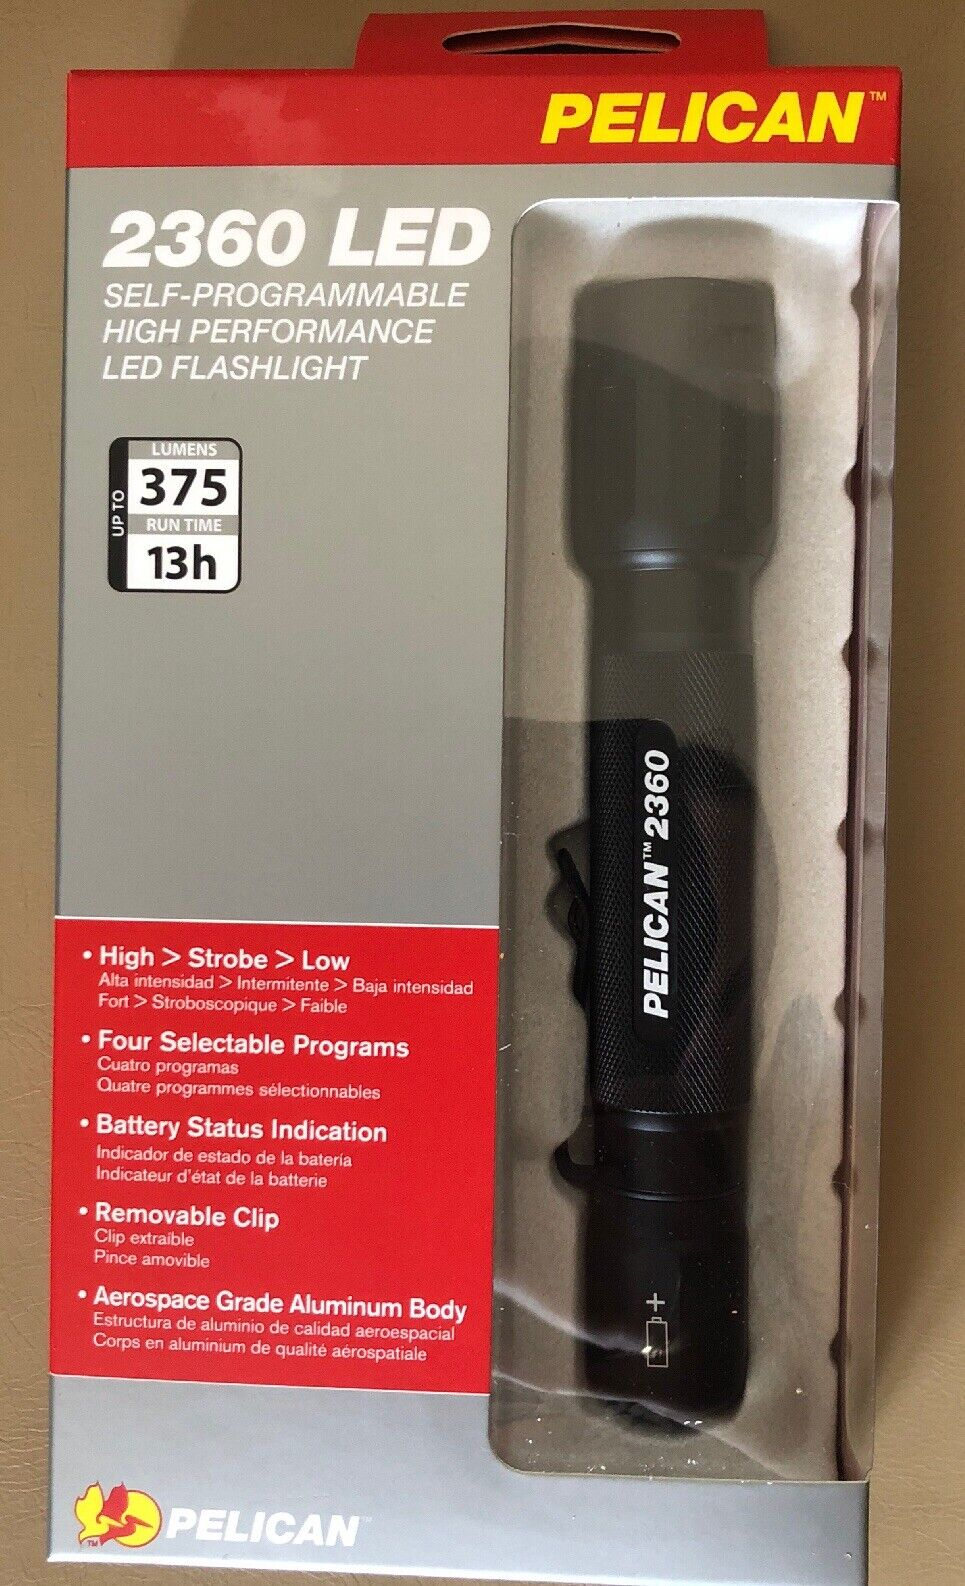 Police Tactilcal 2360 Pelican 2 Cell AA LED Flashlight 375 Lumem Strobe  Police